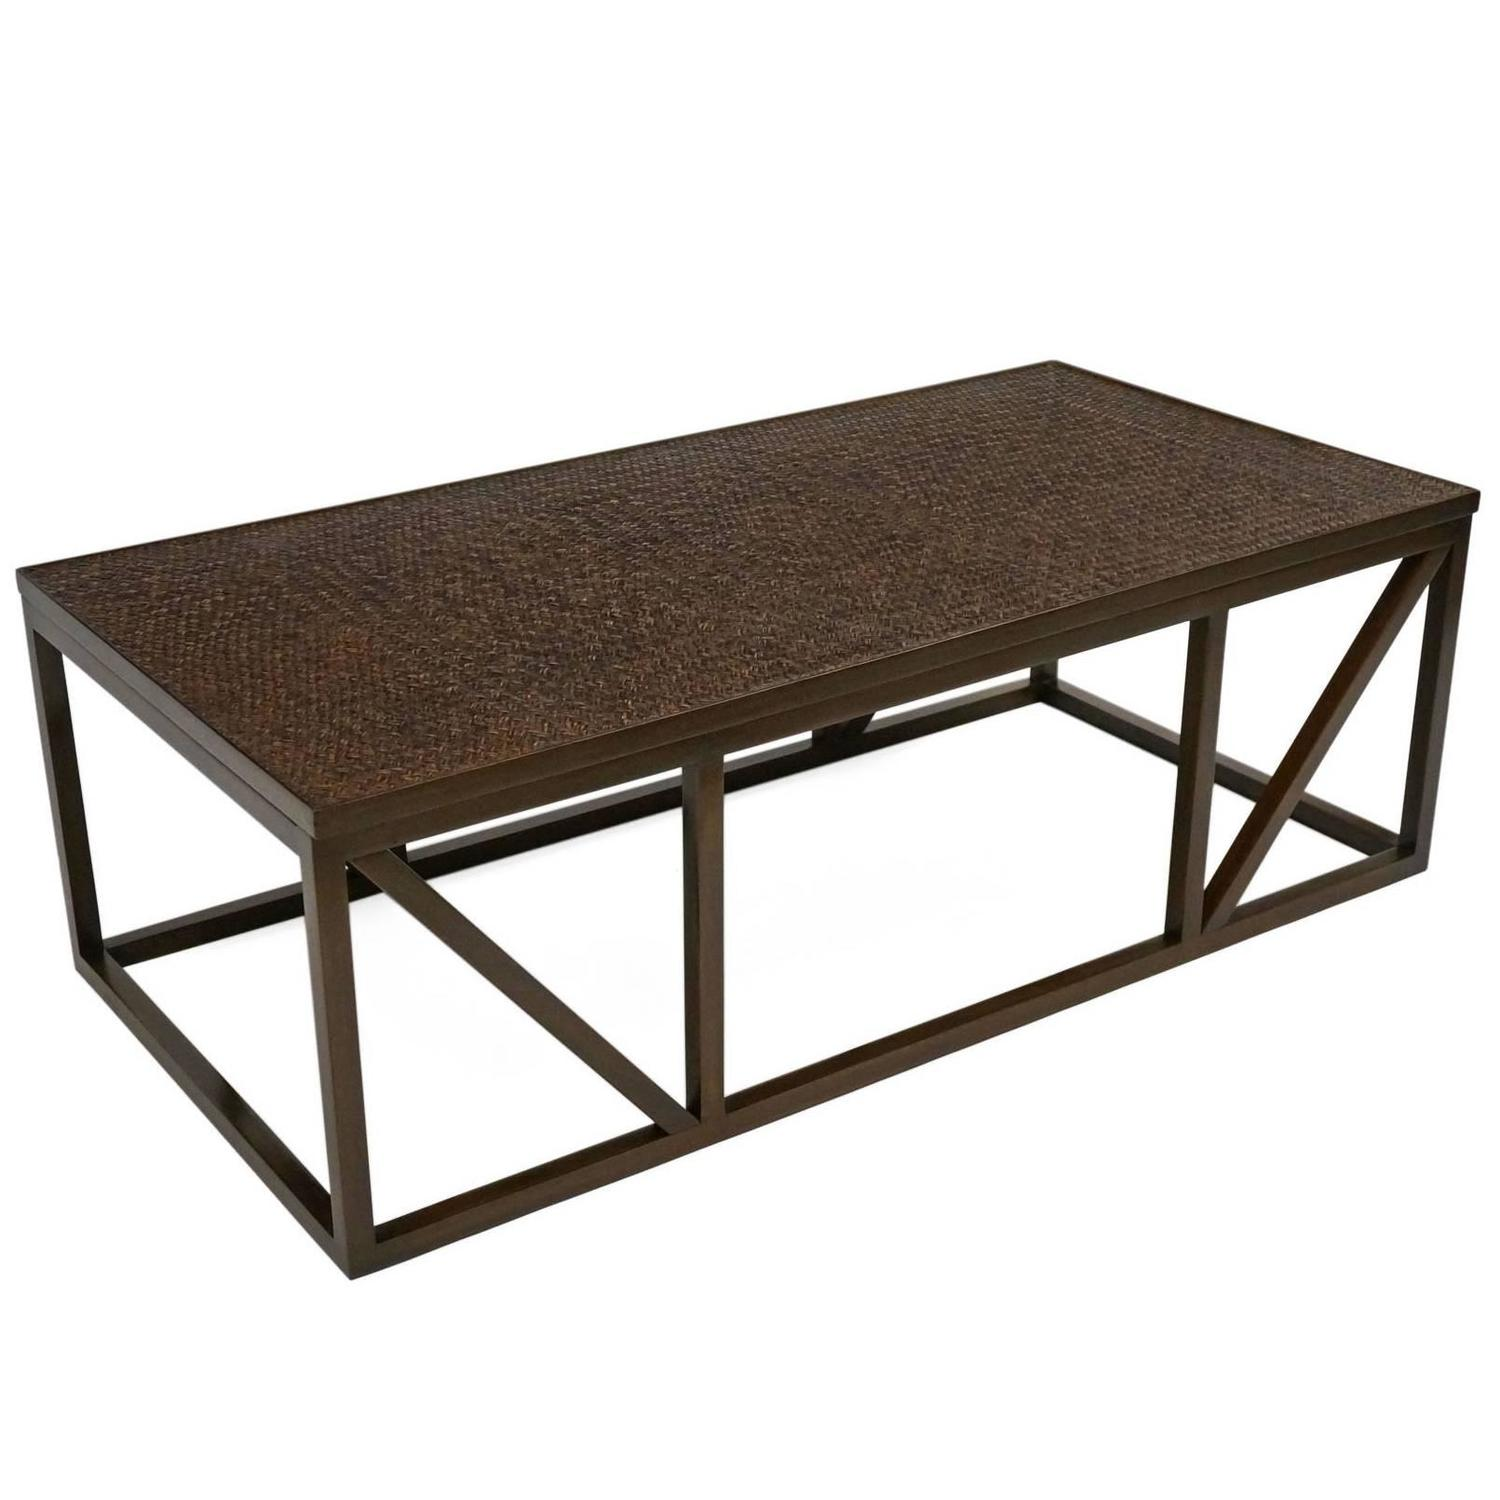 Charles Modern 47 Square Glass Top Coffee Table W: Rectangular Wood Coffee Table With Woven Rattan Top